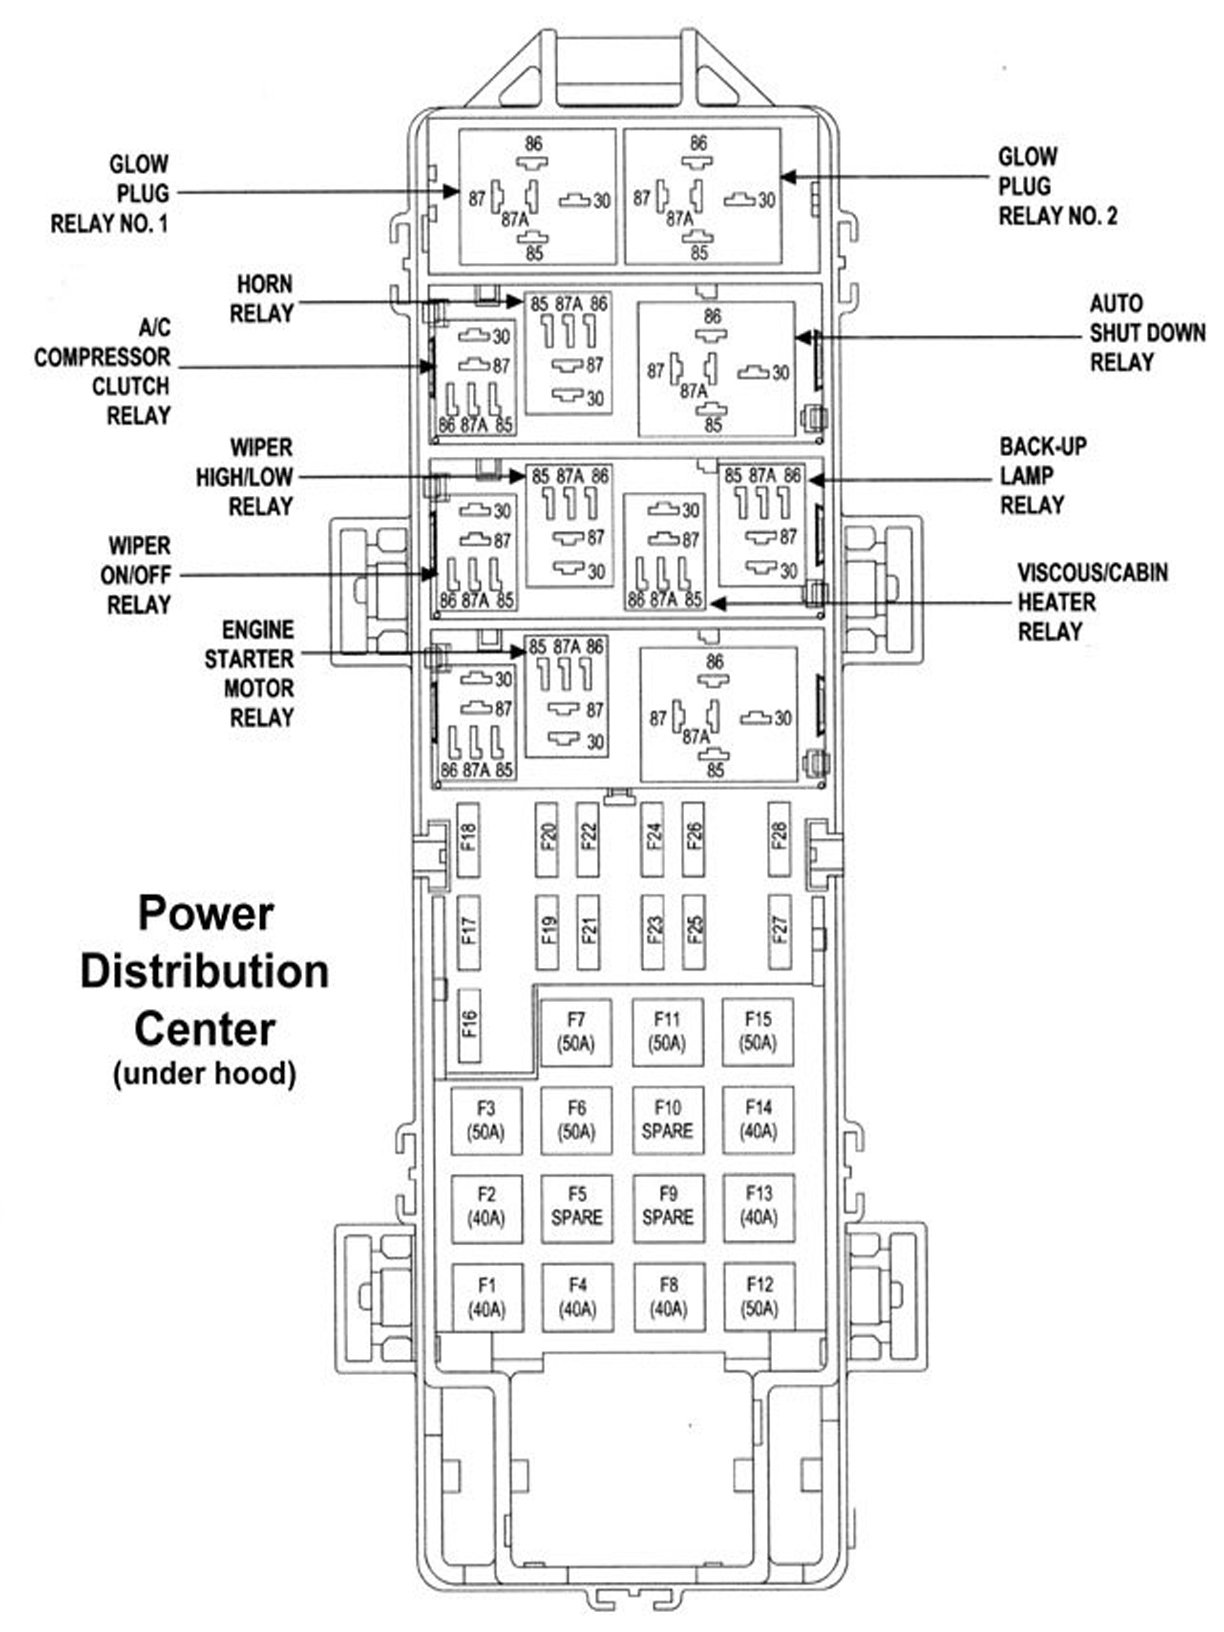 AAAAAAAAug 28 Fuse Box 04 91415 jeep grand cherokee wj 1999 to 2004 fuse box diagram cherokeeforum 1999 jeep xj fuse box diagram at fashall.co